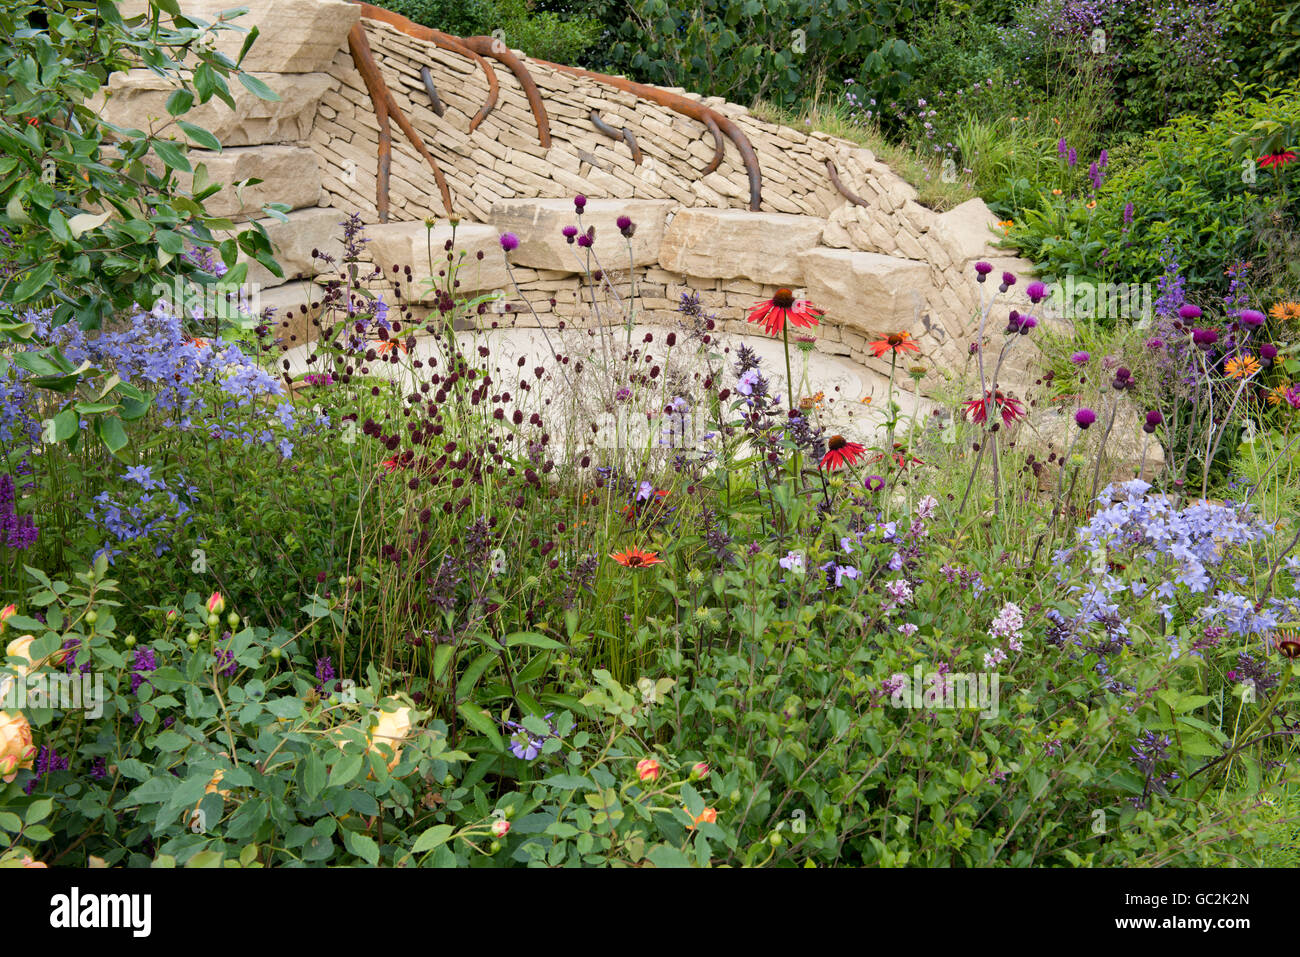 A stone seating area surrounded by naturalistic planting in The Zooflora: Outstanding Natural Beauty Garden - Stock Image